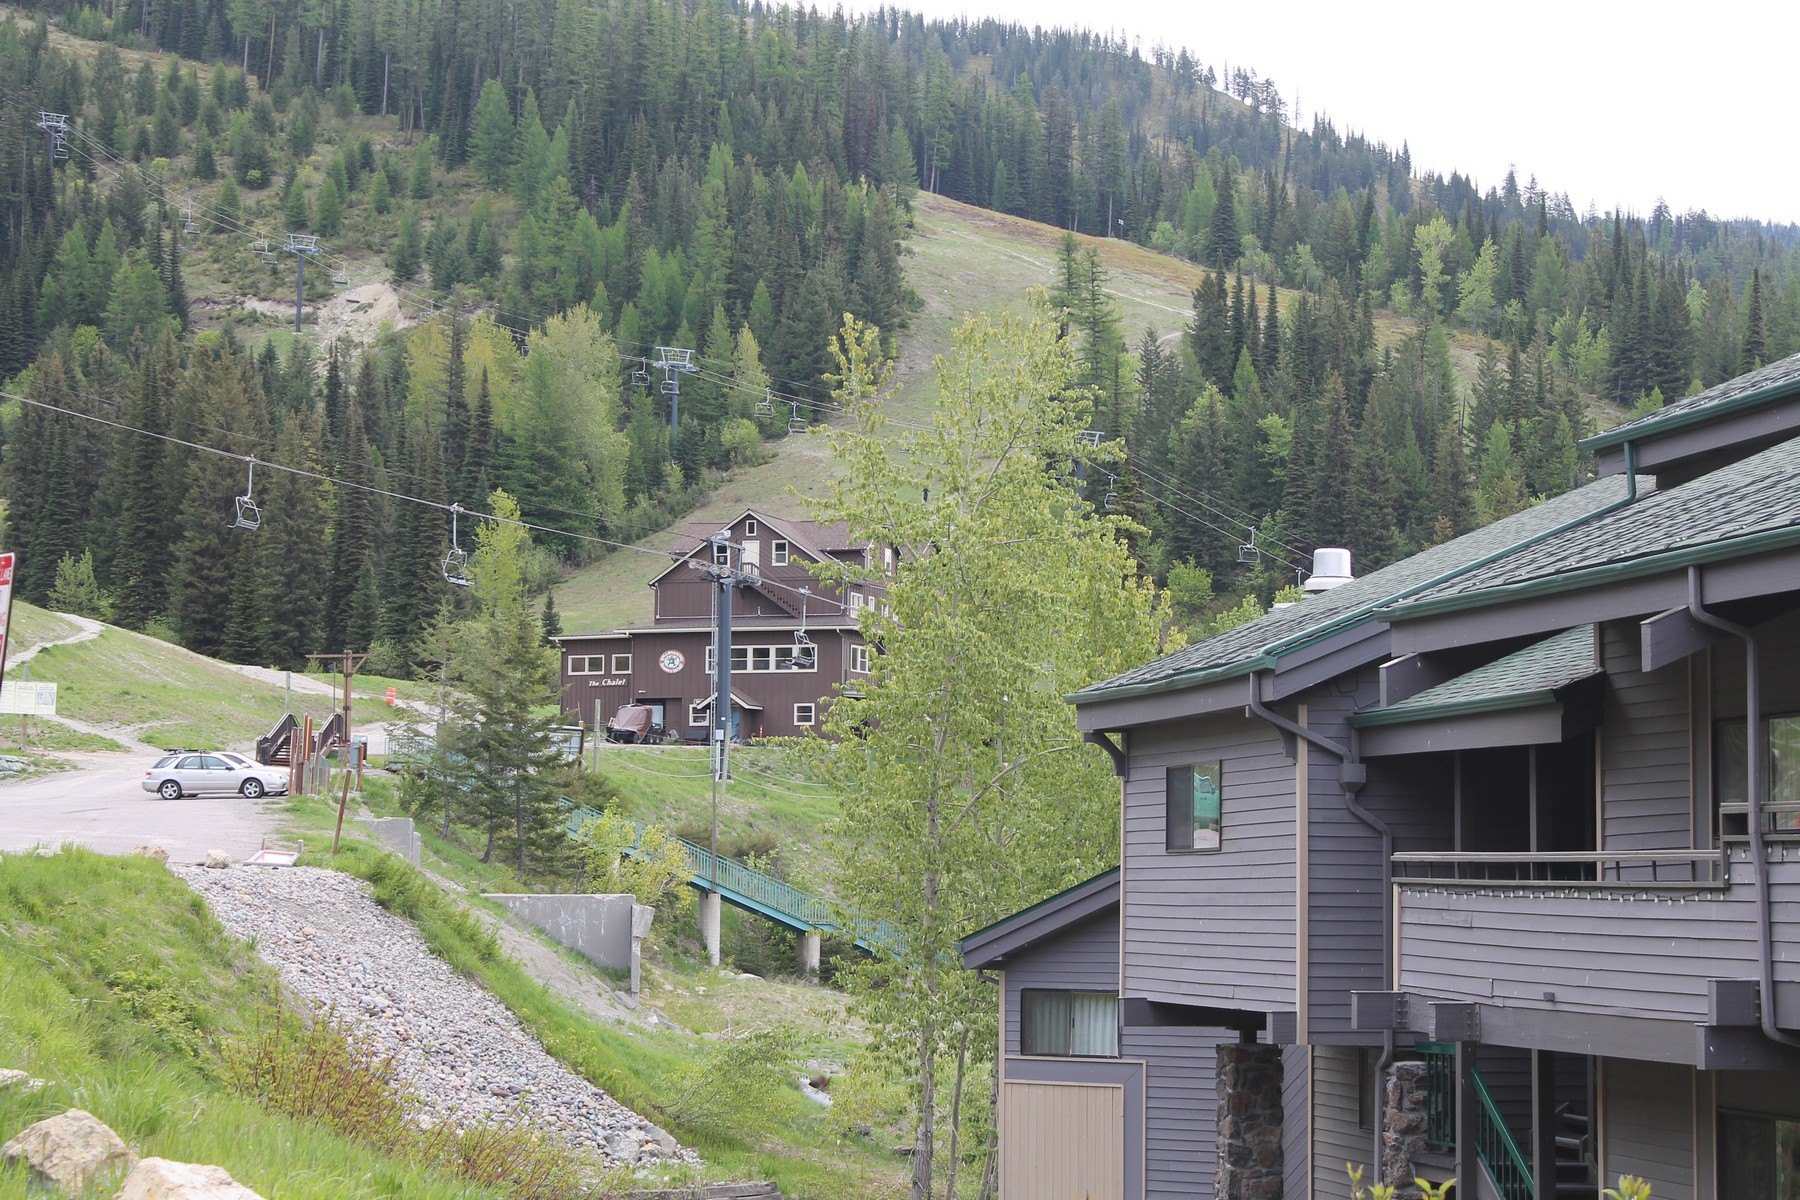 Additional photo for property listing at 3898 Big Mountain Road, Edelweiss 211 3898  Big Mountain Rd 211 Eidelweiss Whitefish, Montana 59937 United States